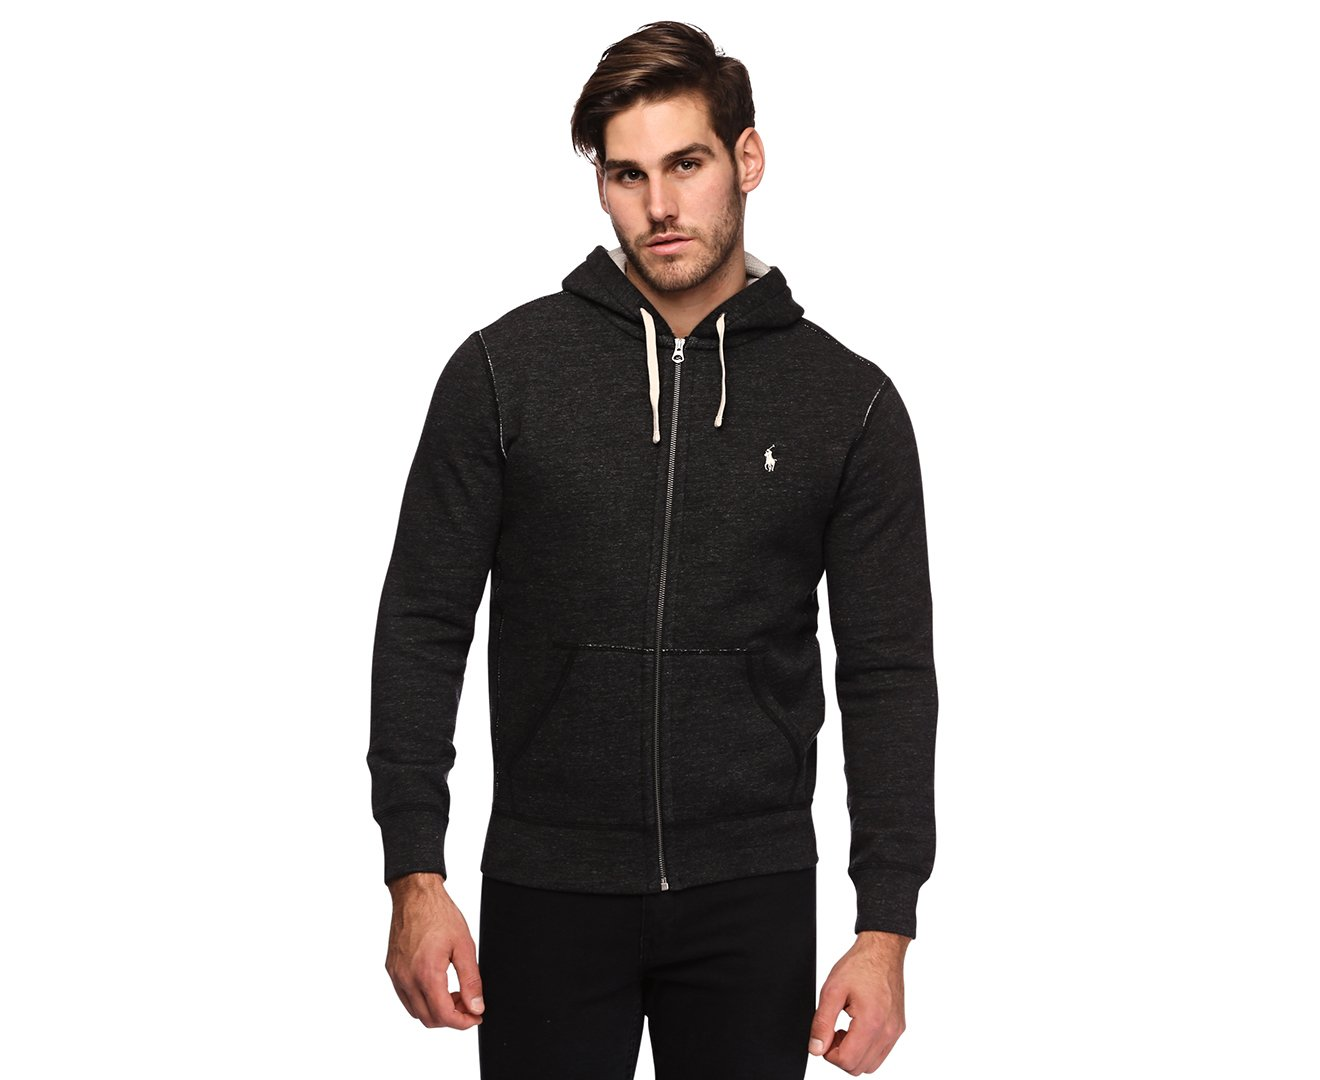 Polo Ralph Lauren Classic Full-Zip Fleece Hooded Sweatshirt